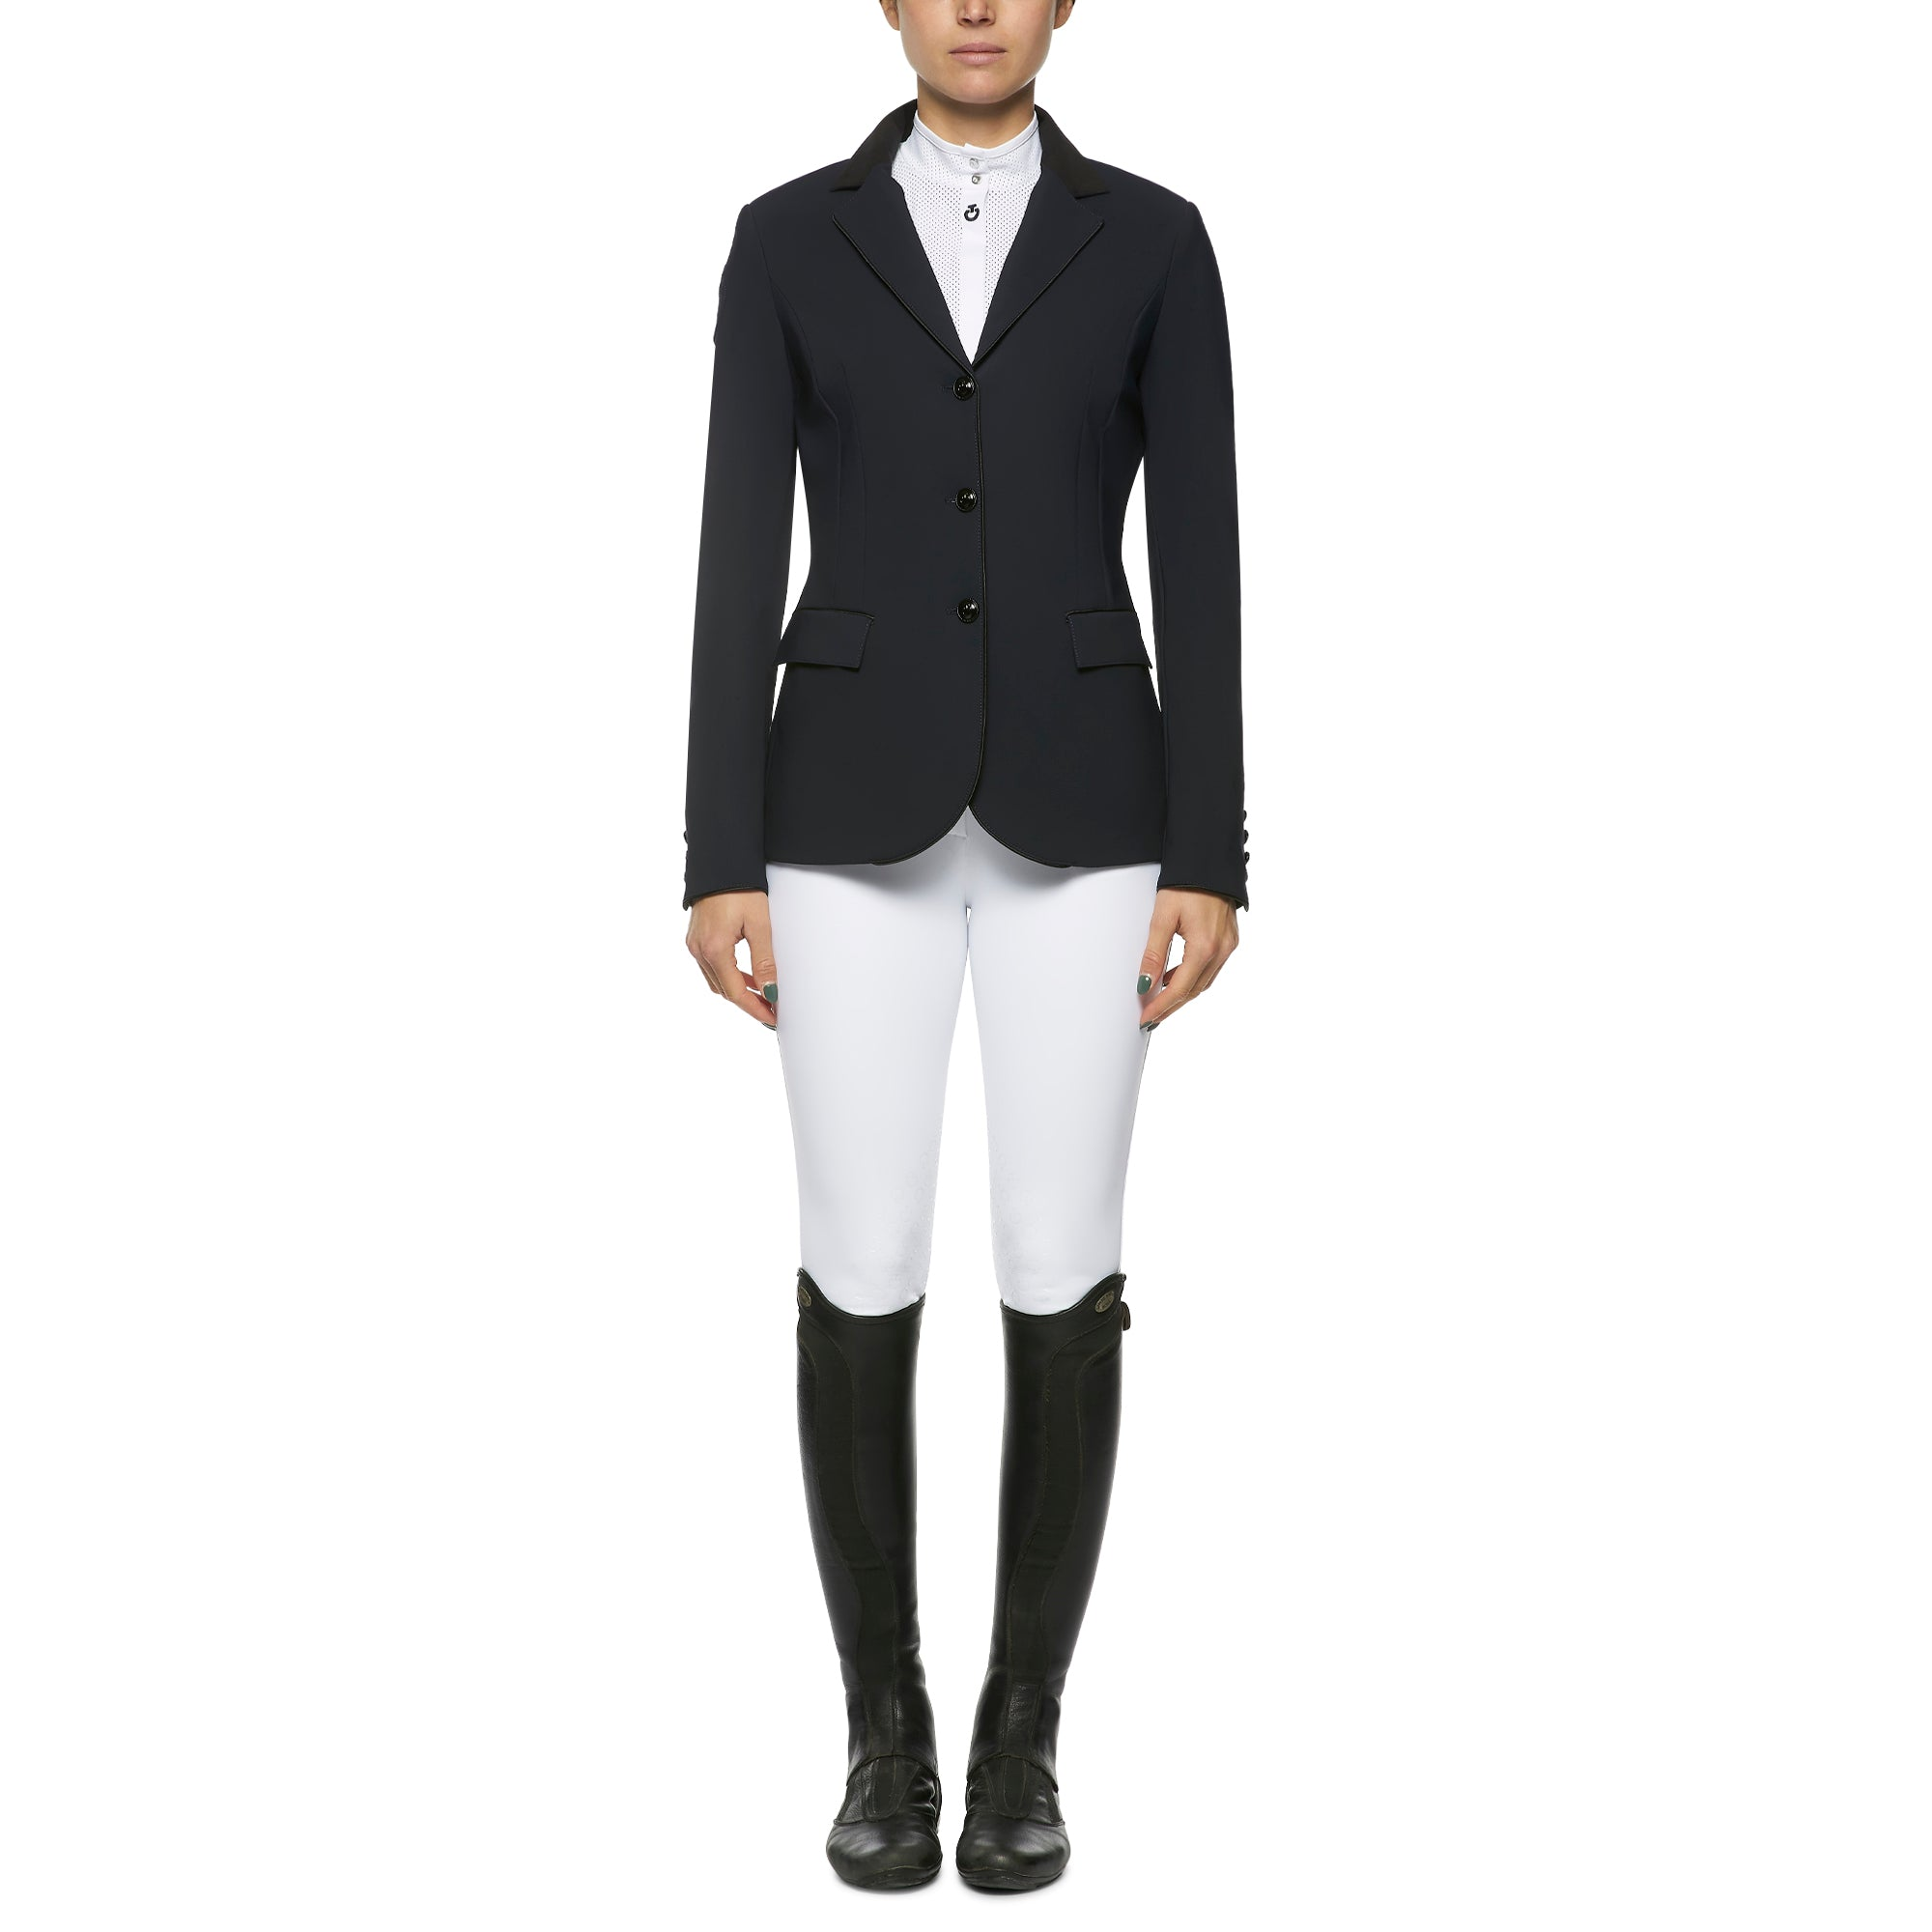 The Cavalleria Toscana GP Riding Jacket competition jacket never goes out of style and exudes typical CT sophistication and quality.  The tailoring is in a class of its own allowing for an extremely flattering fit whilst giving maximum movement when riding. The luxury soft stretchy jersey is comfortable, easy to care for and doesn't go out of shape ensuring you always look your best in the ring.  If your size is not in stock we can order it in for you subject to availability